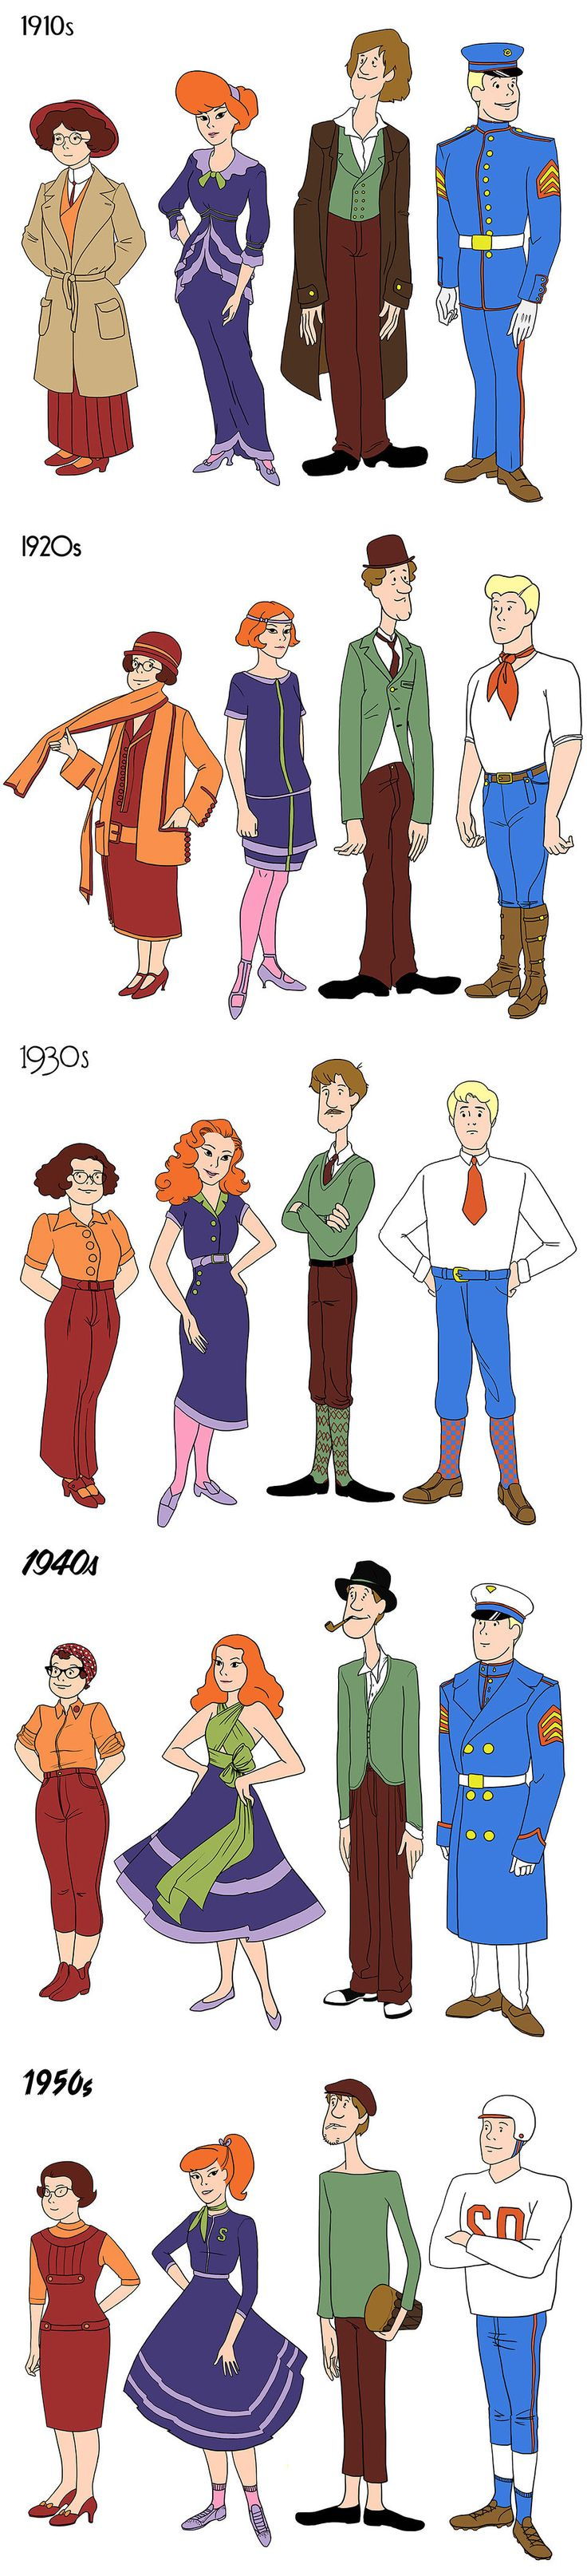 608 Best Scooby Doo Images On Pinterest Scooby Doo Scoubidou And Fancy Dress